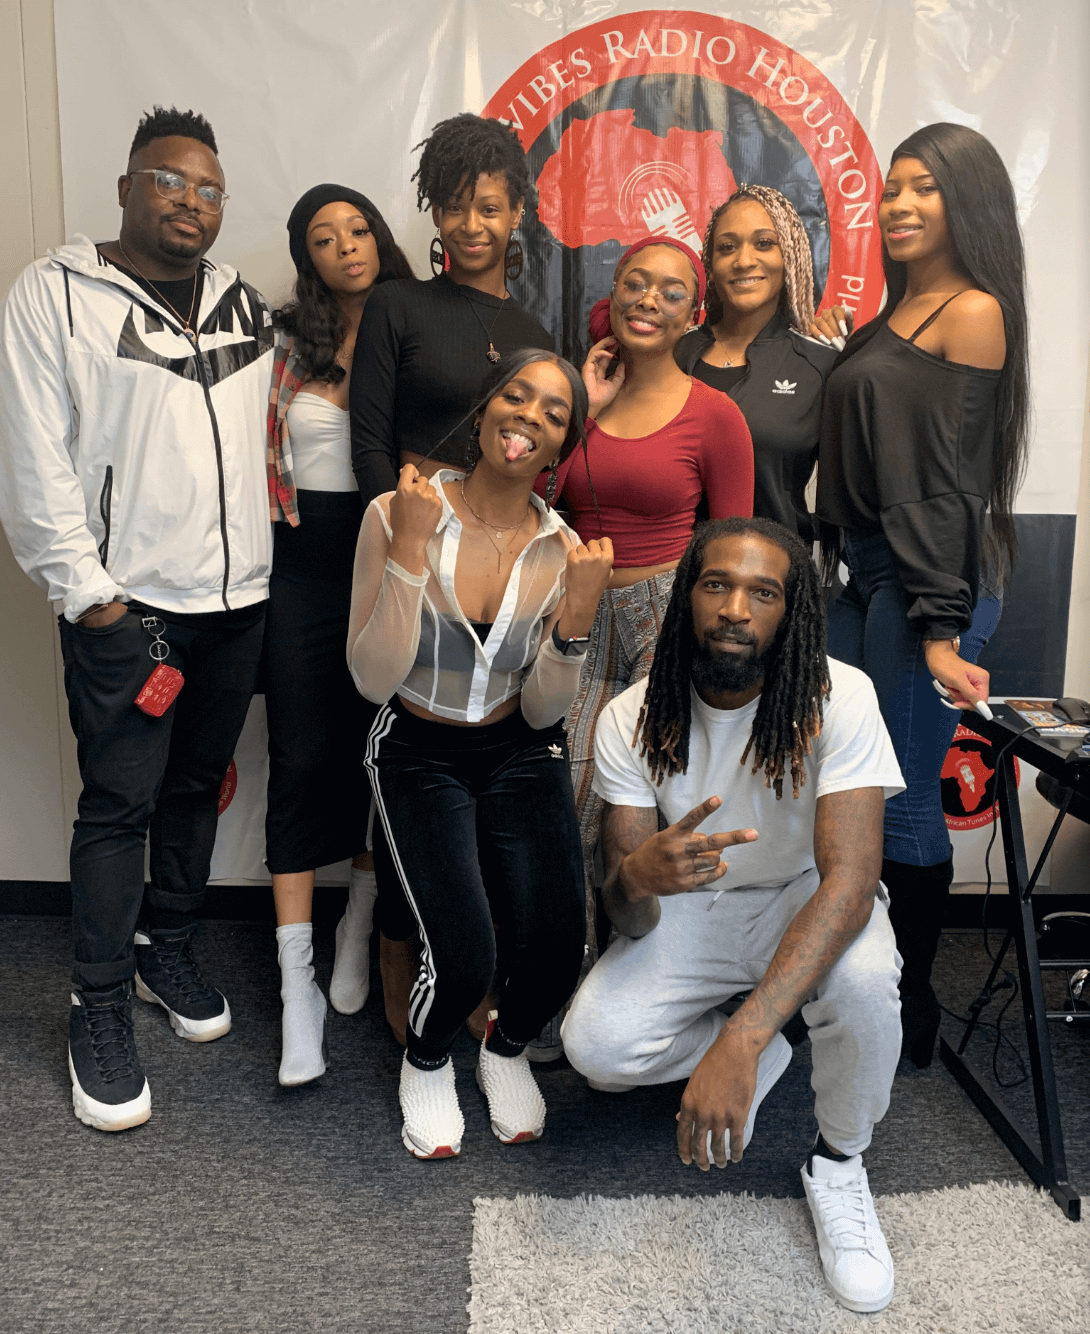 AfroVibes Radio | The Tea Club Show | Interview with Hiphop Rapper: KAYY KILO